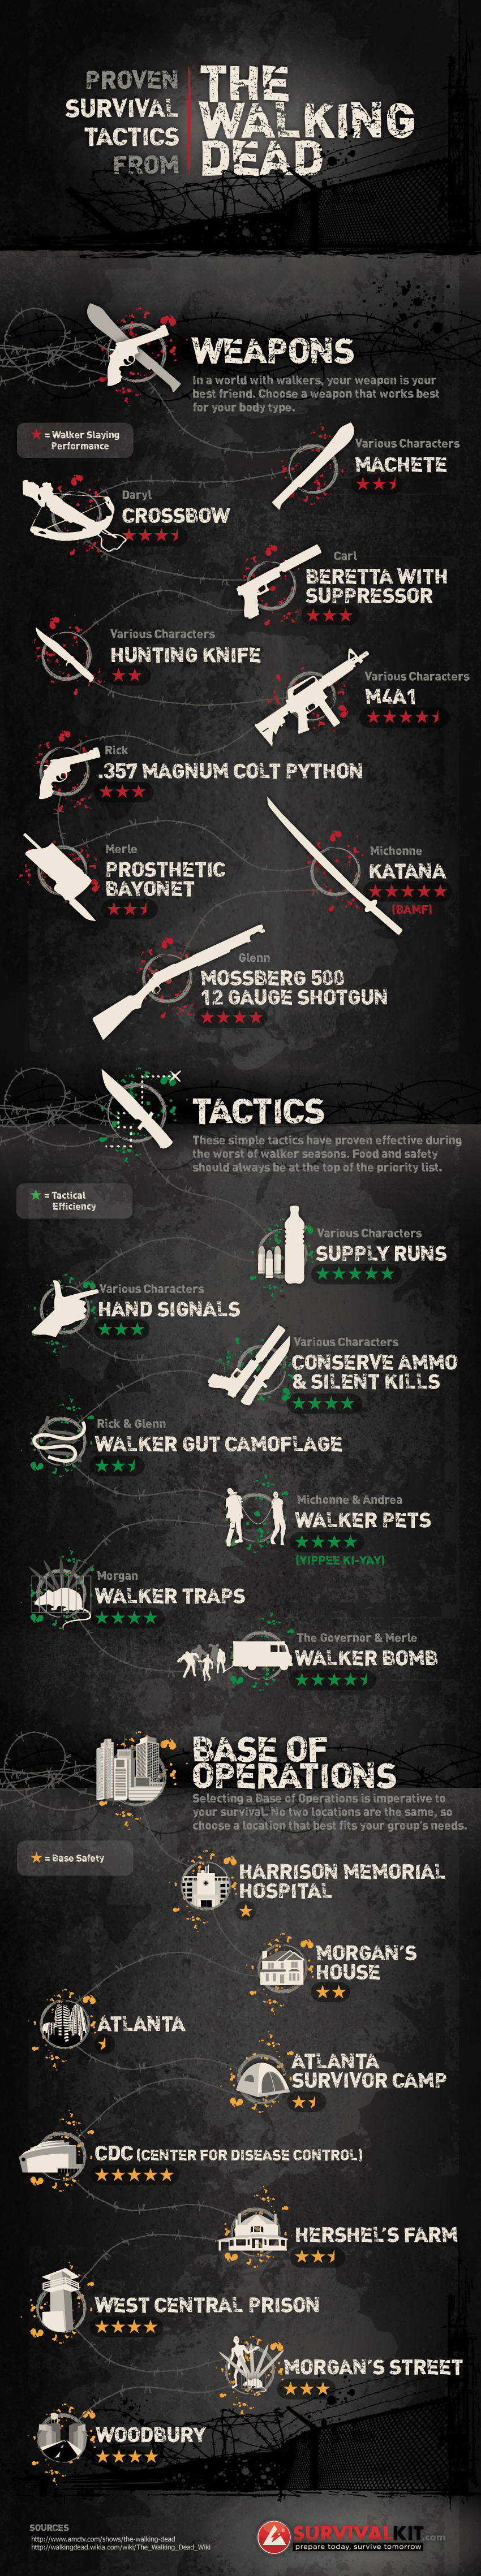 Proven-Survival-Tactics-From-The-Walking-Dead